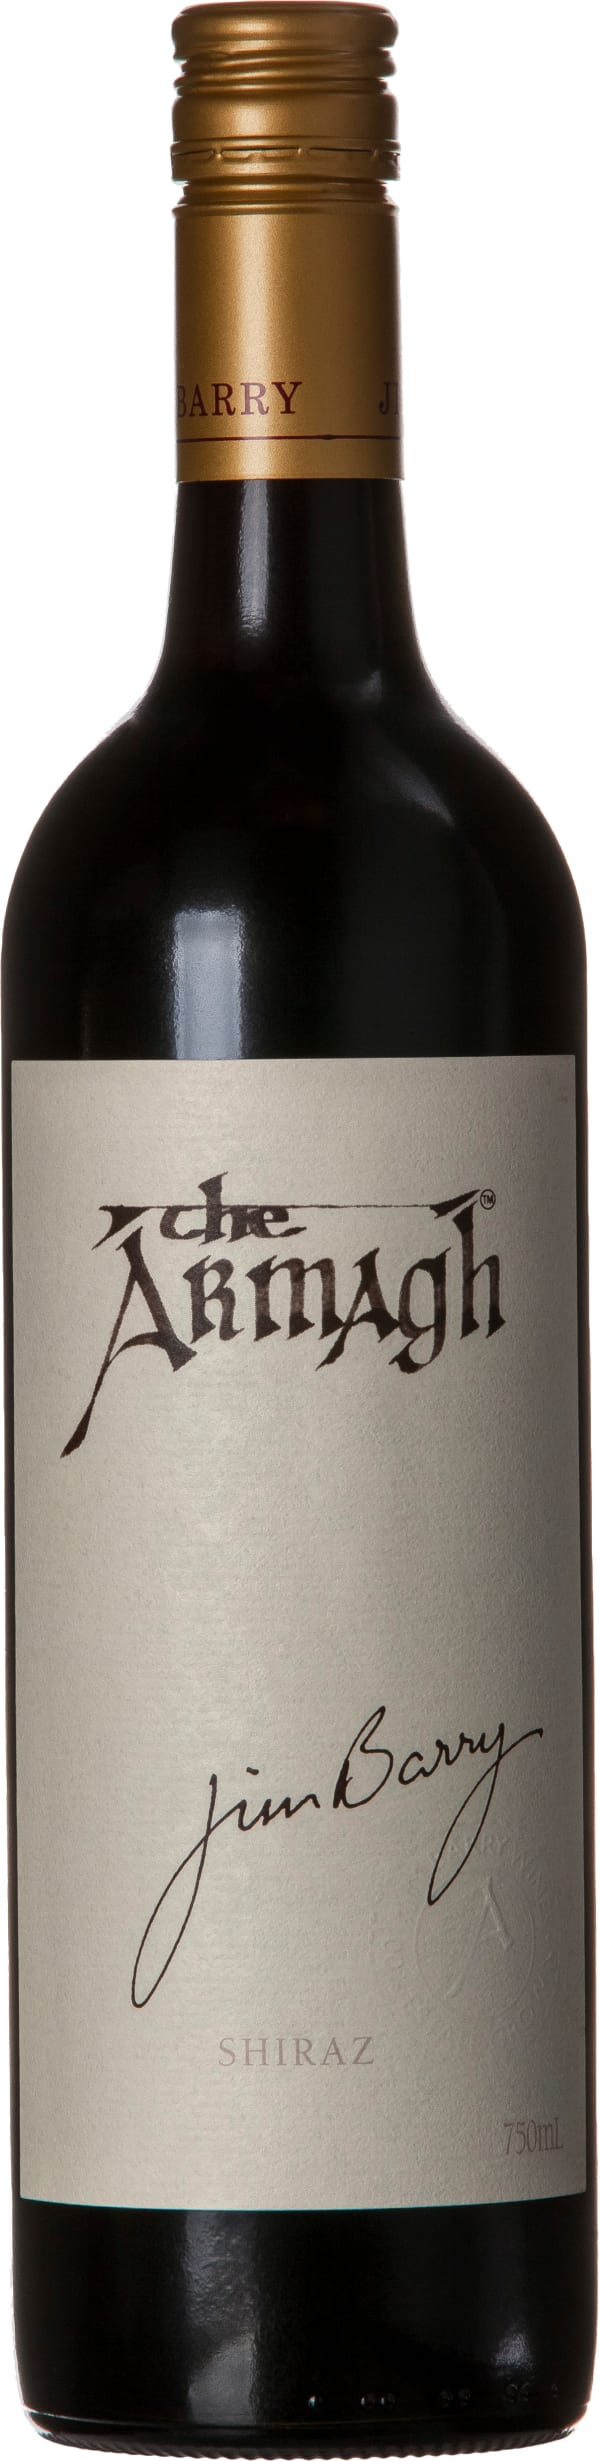 Jim Barry The Armagh Shiraz 2014